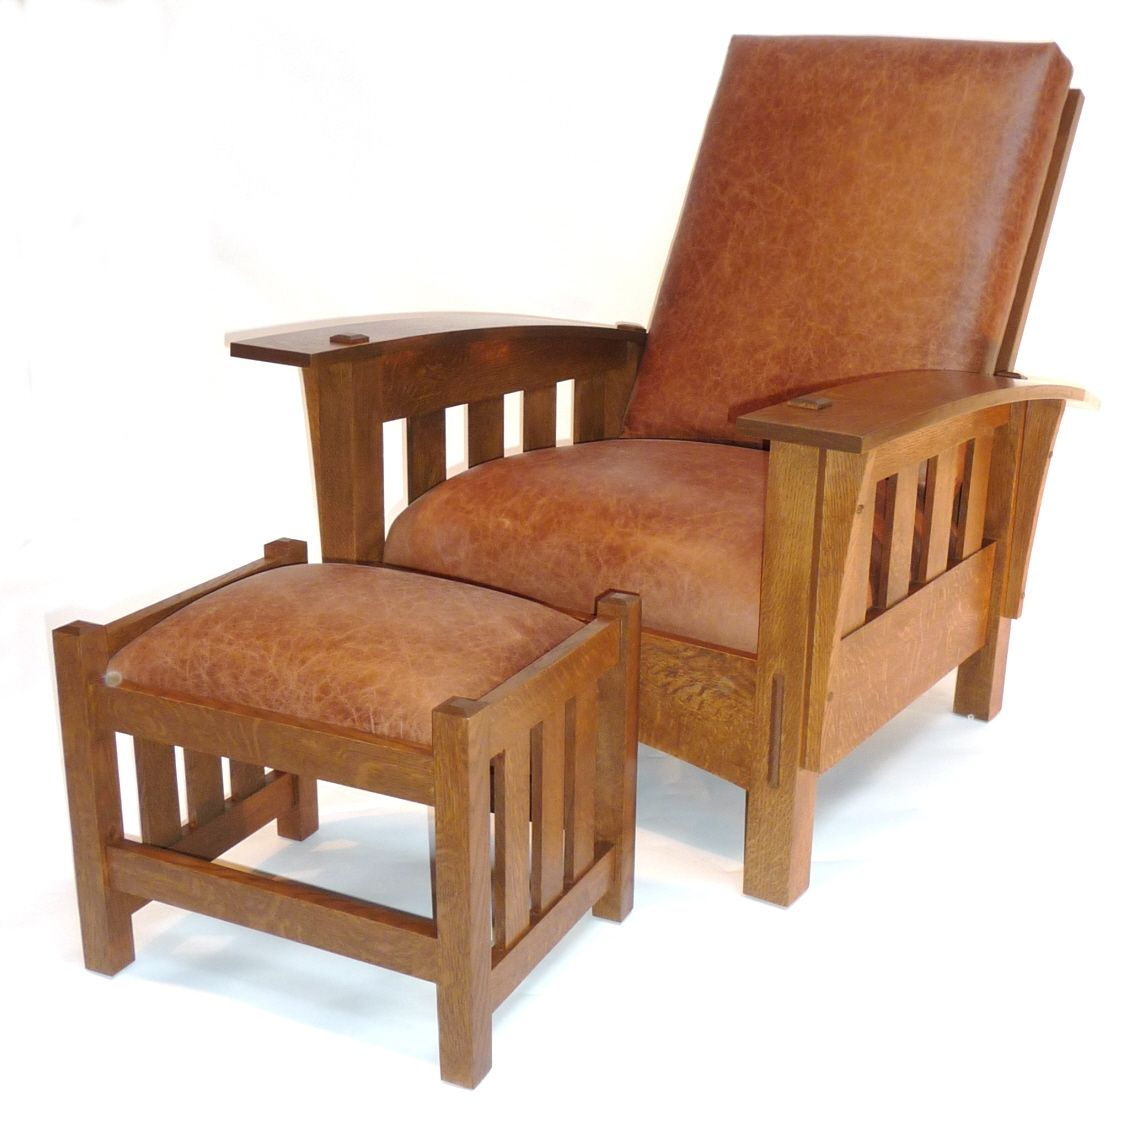 Hand Crafted Bow Arm Arm Morris Chair With Footstool By